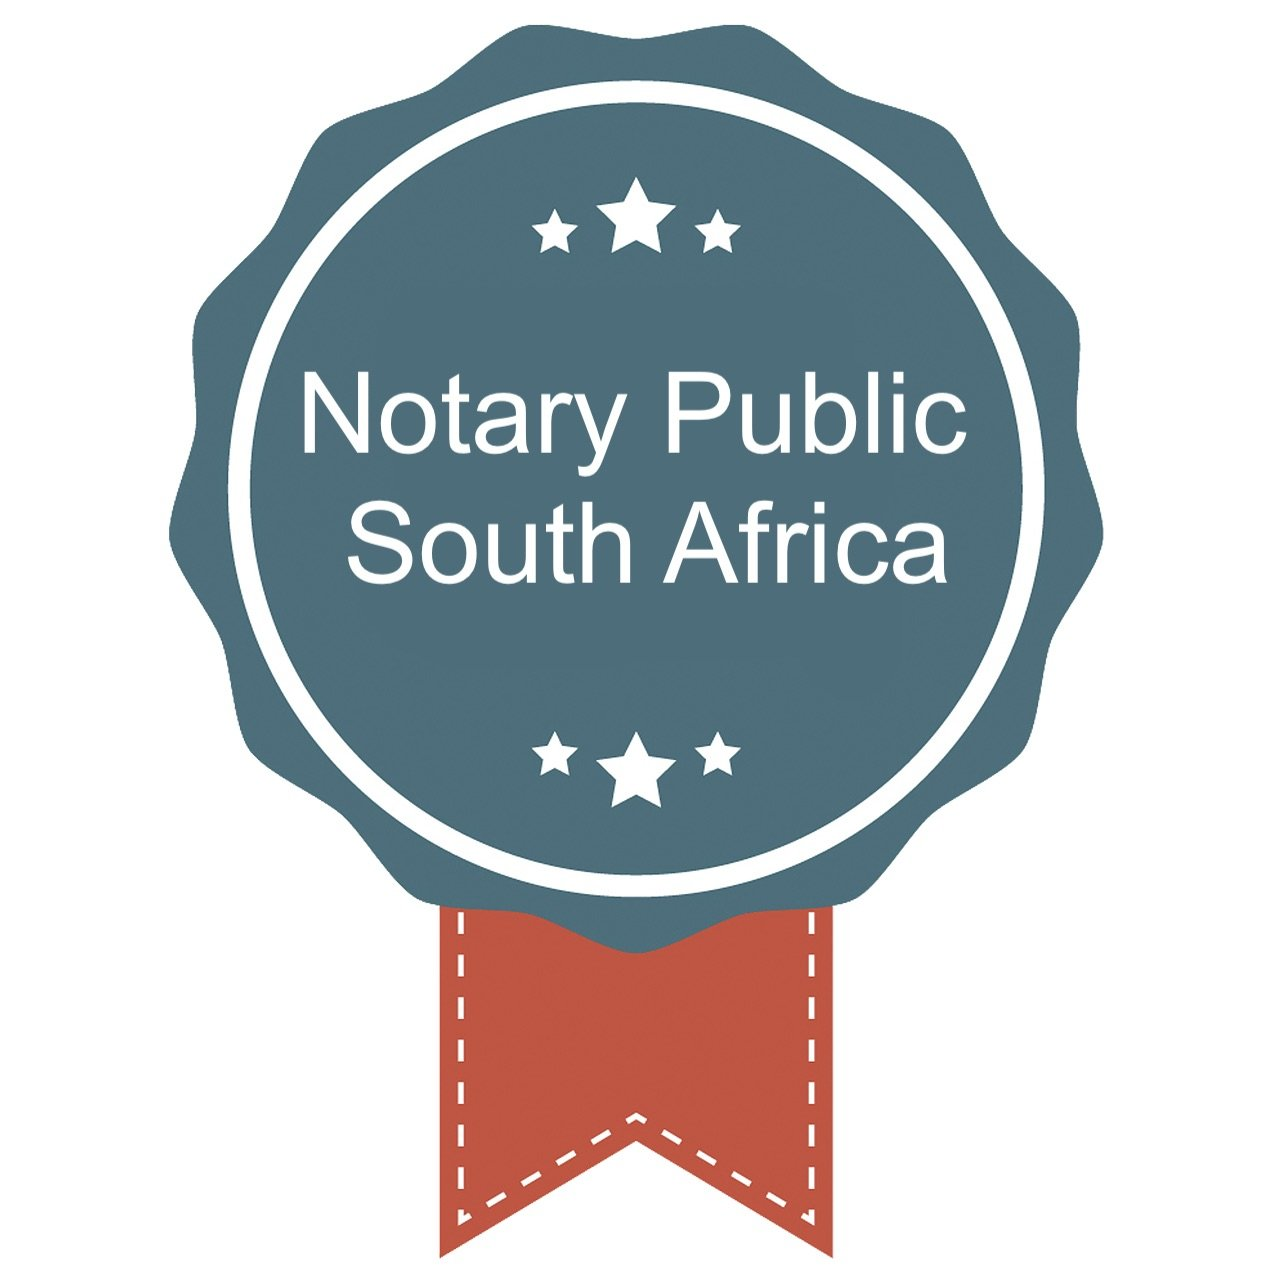 notary-public-south-africa